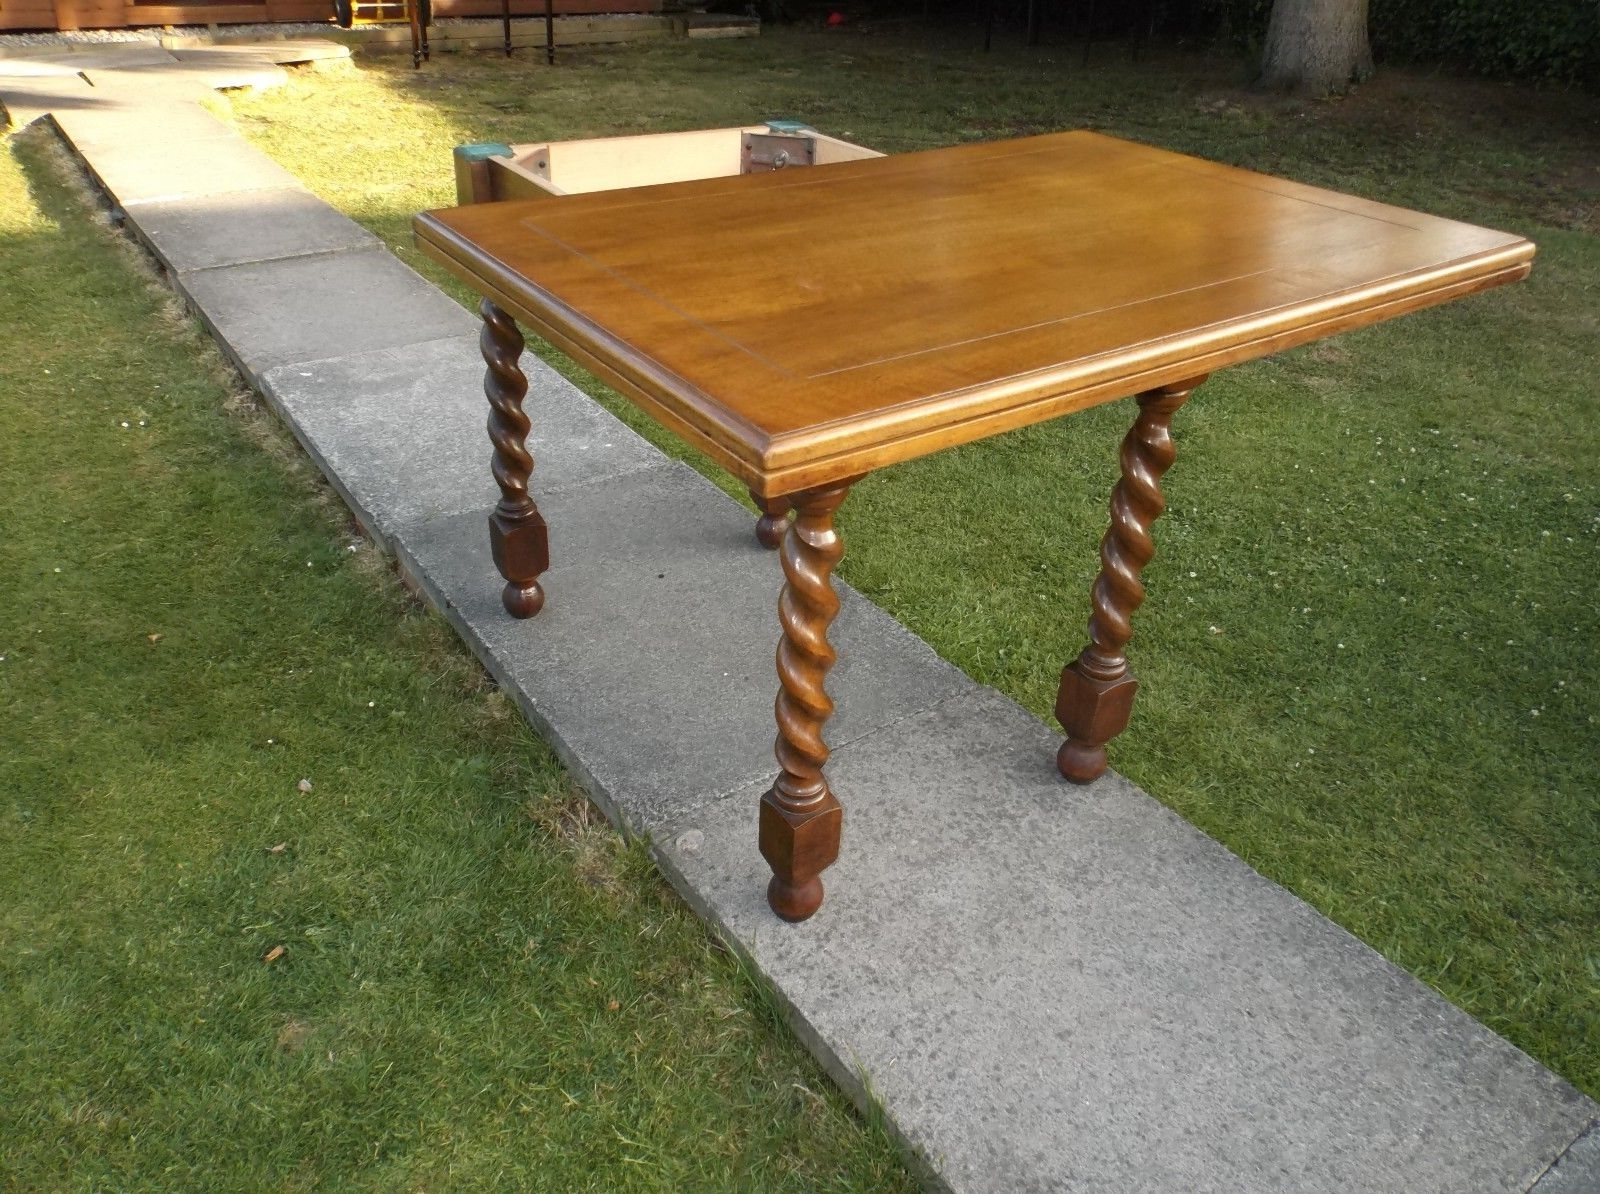 Flip Top Oak Dining Tables For Most Popular A Twist And Flip Top Oak Barley Twist Leg Games Or Dining Table – (View 10 of 25)